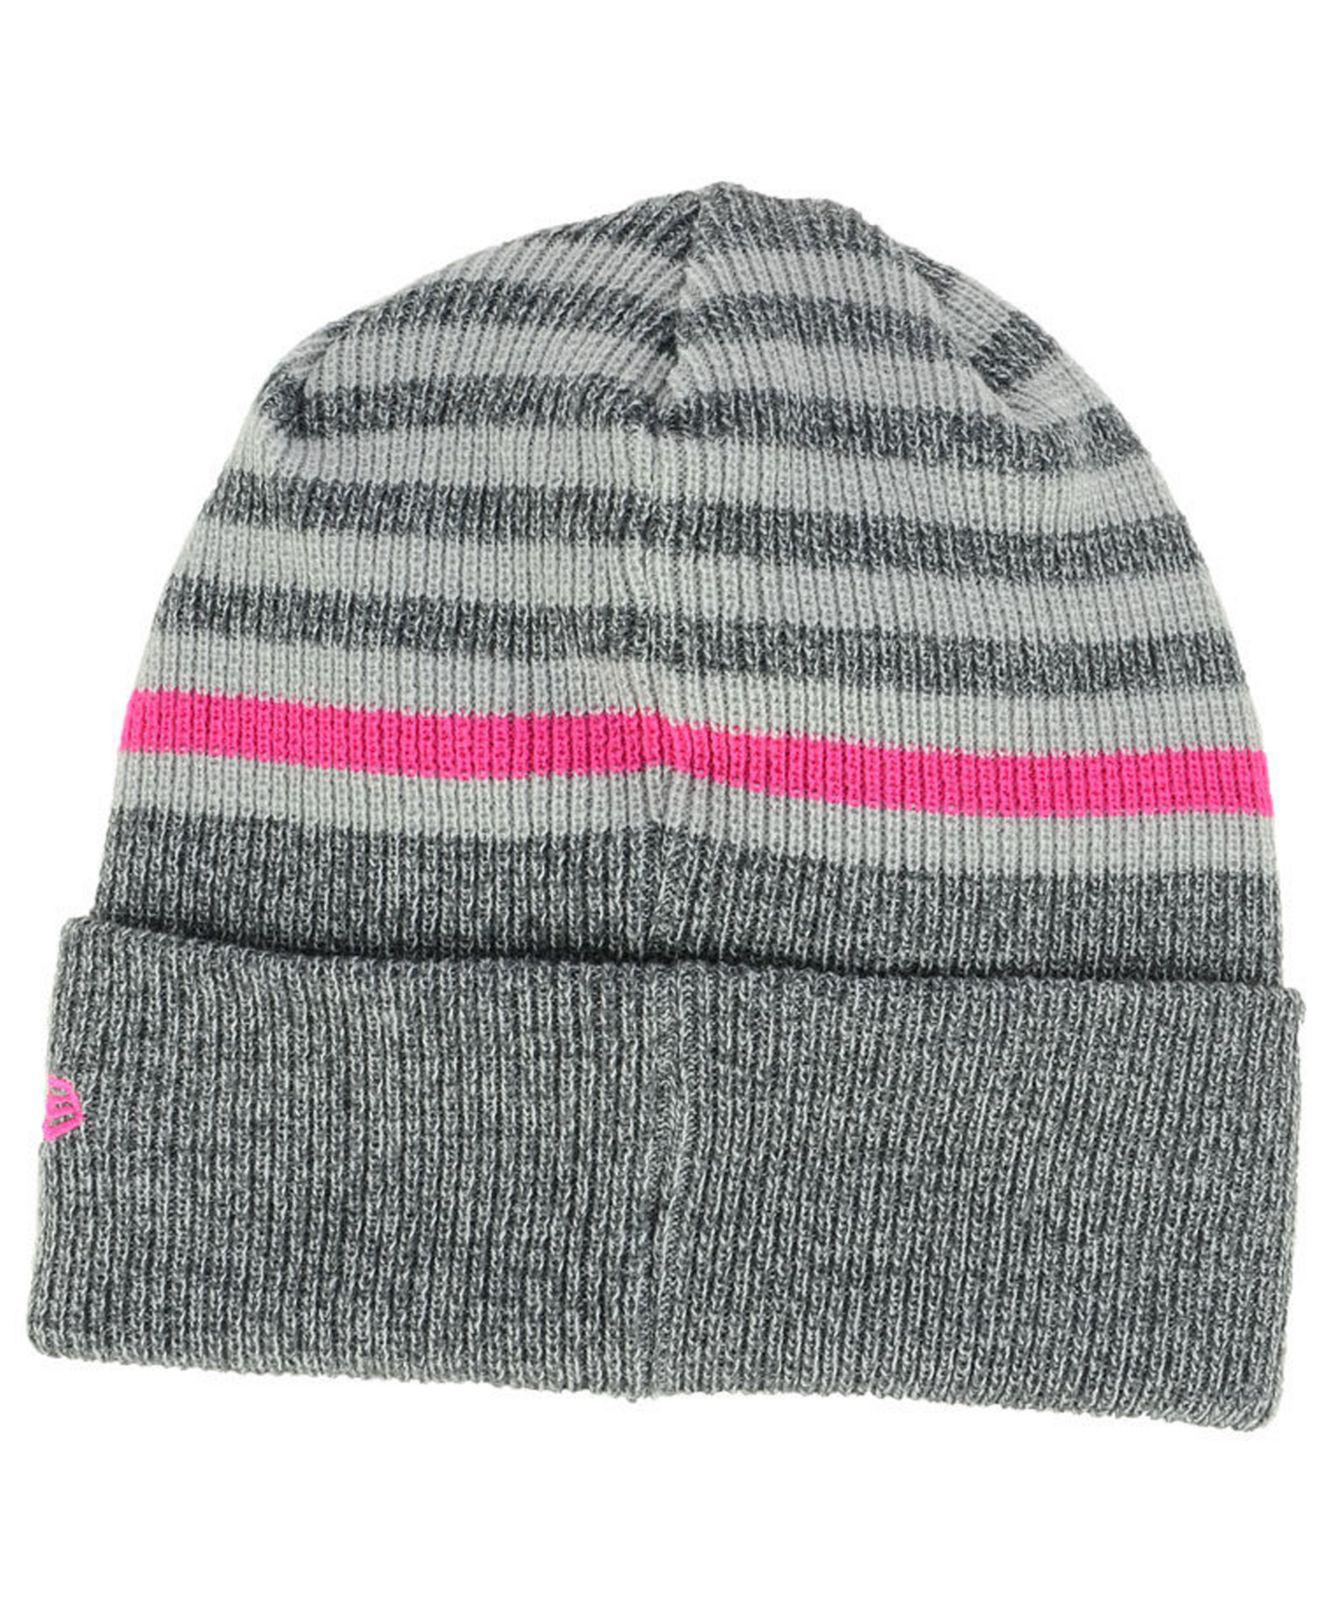 c99a51bb99a Lyst - Ktz Cleveland Cavaliers Striped Cuff Knit Hat in Gray